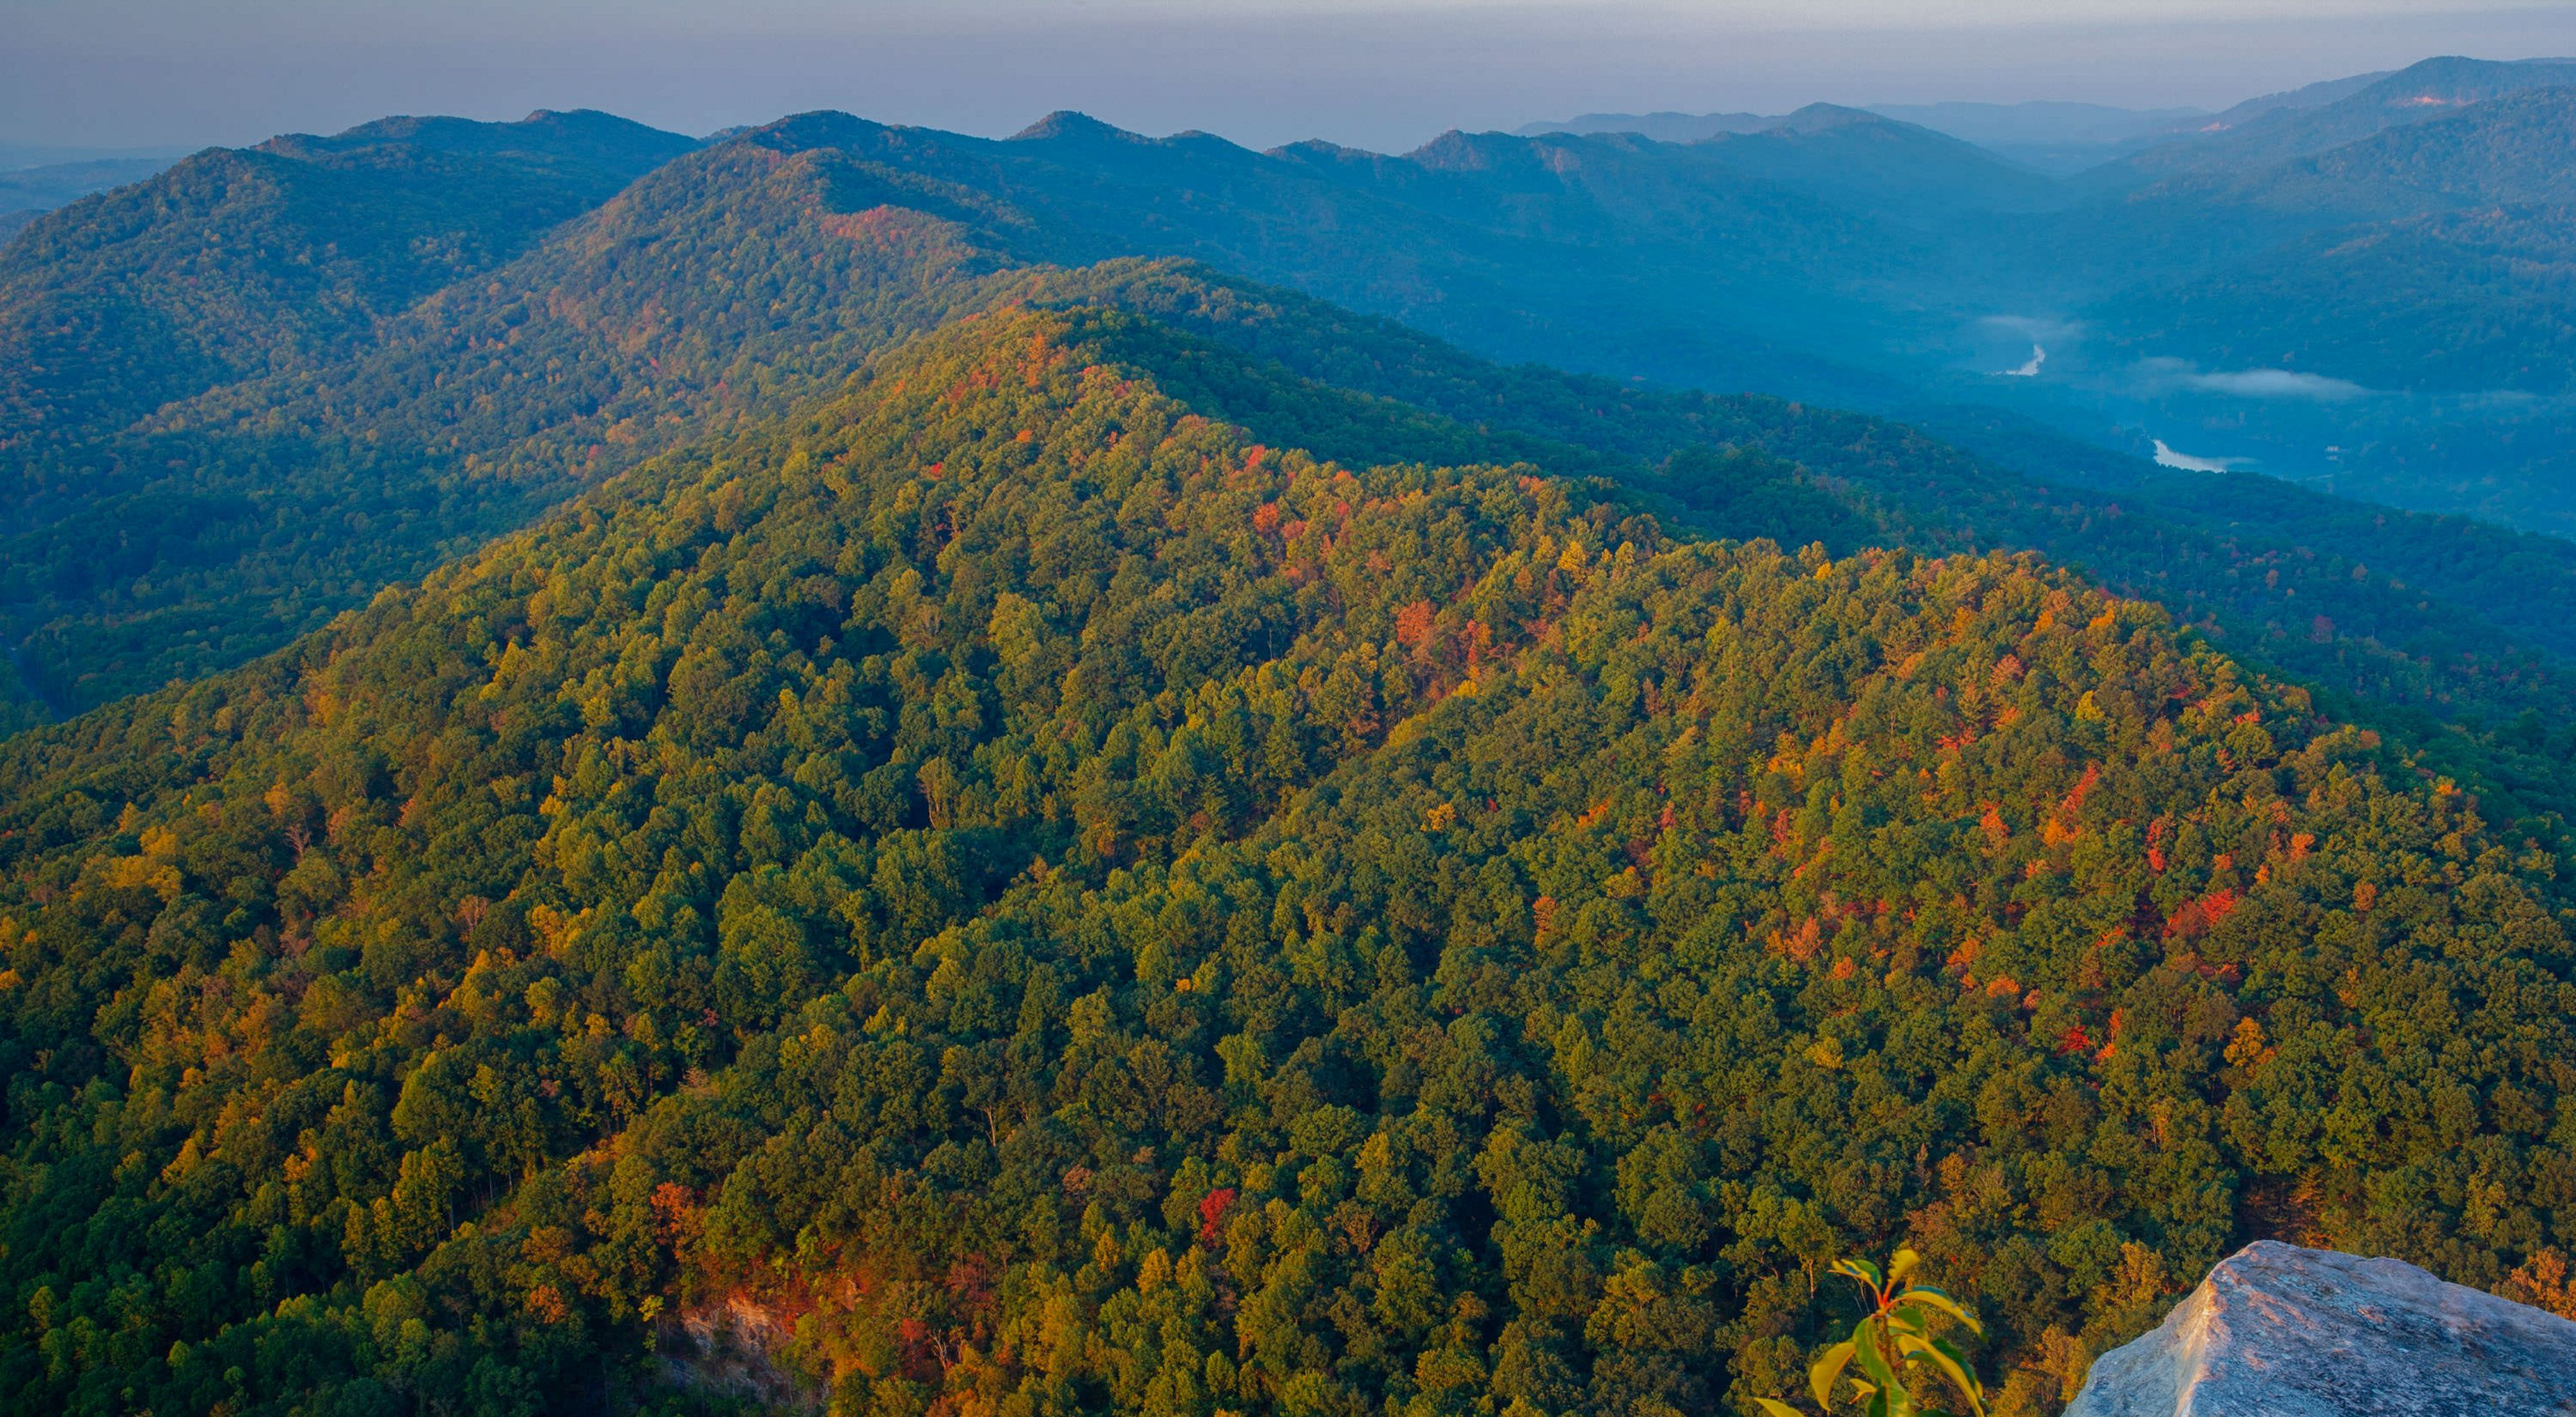 Aerial view looking down along the ridge of a green forested mountain. The ridge stretches to the horizon where it intersects with another ridge line. White mist dots the deep valleys.